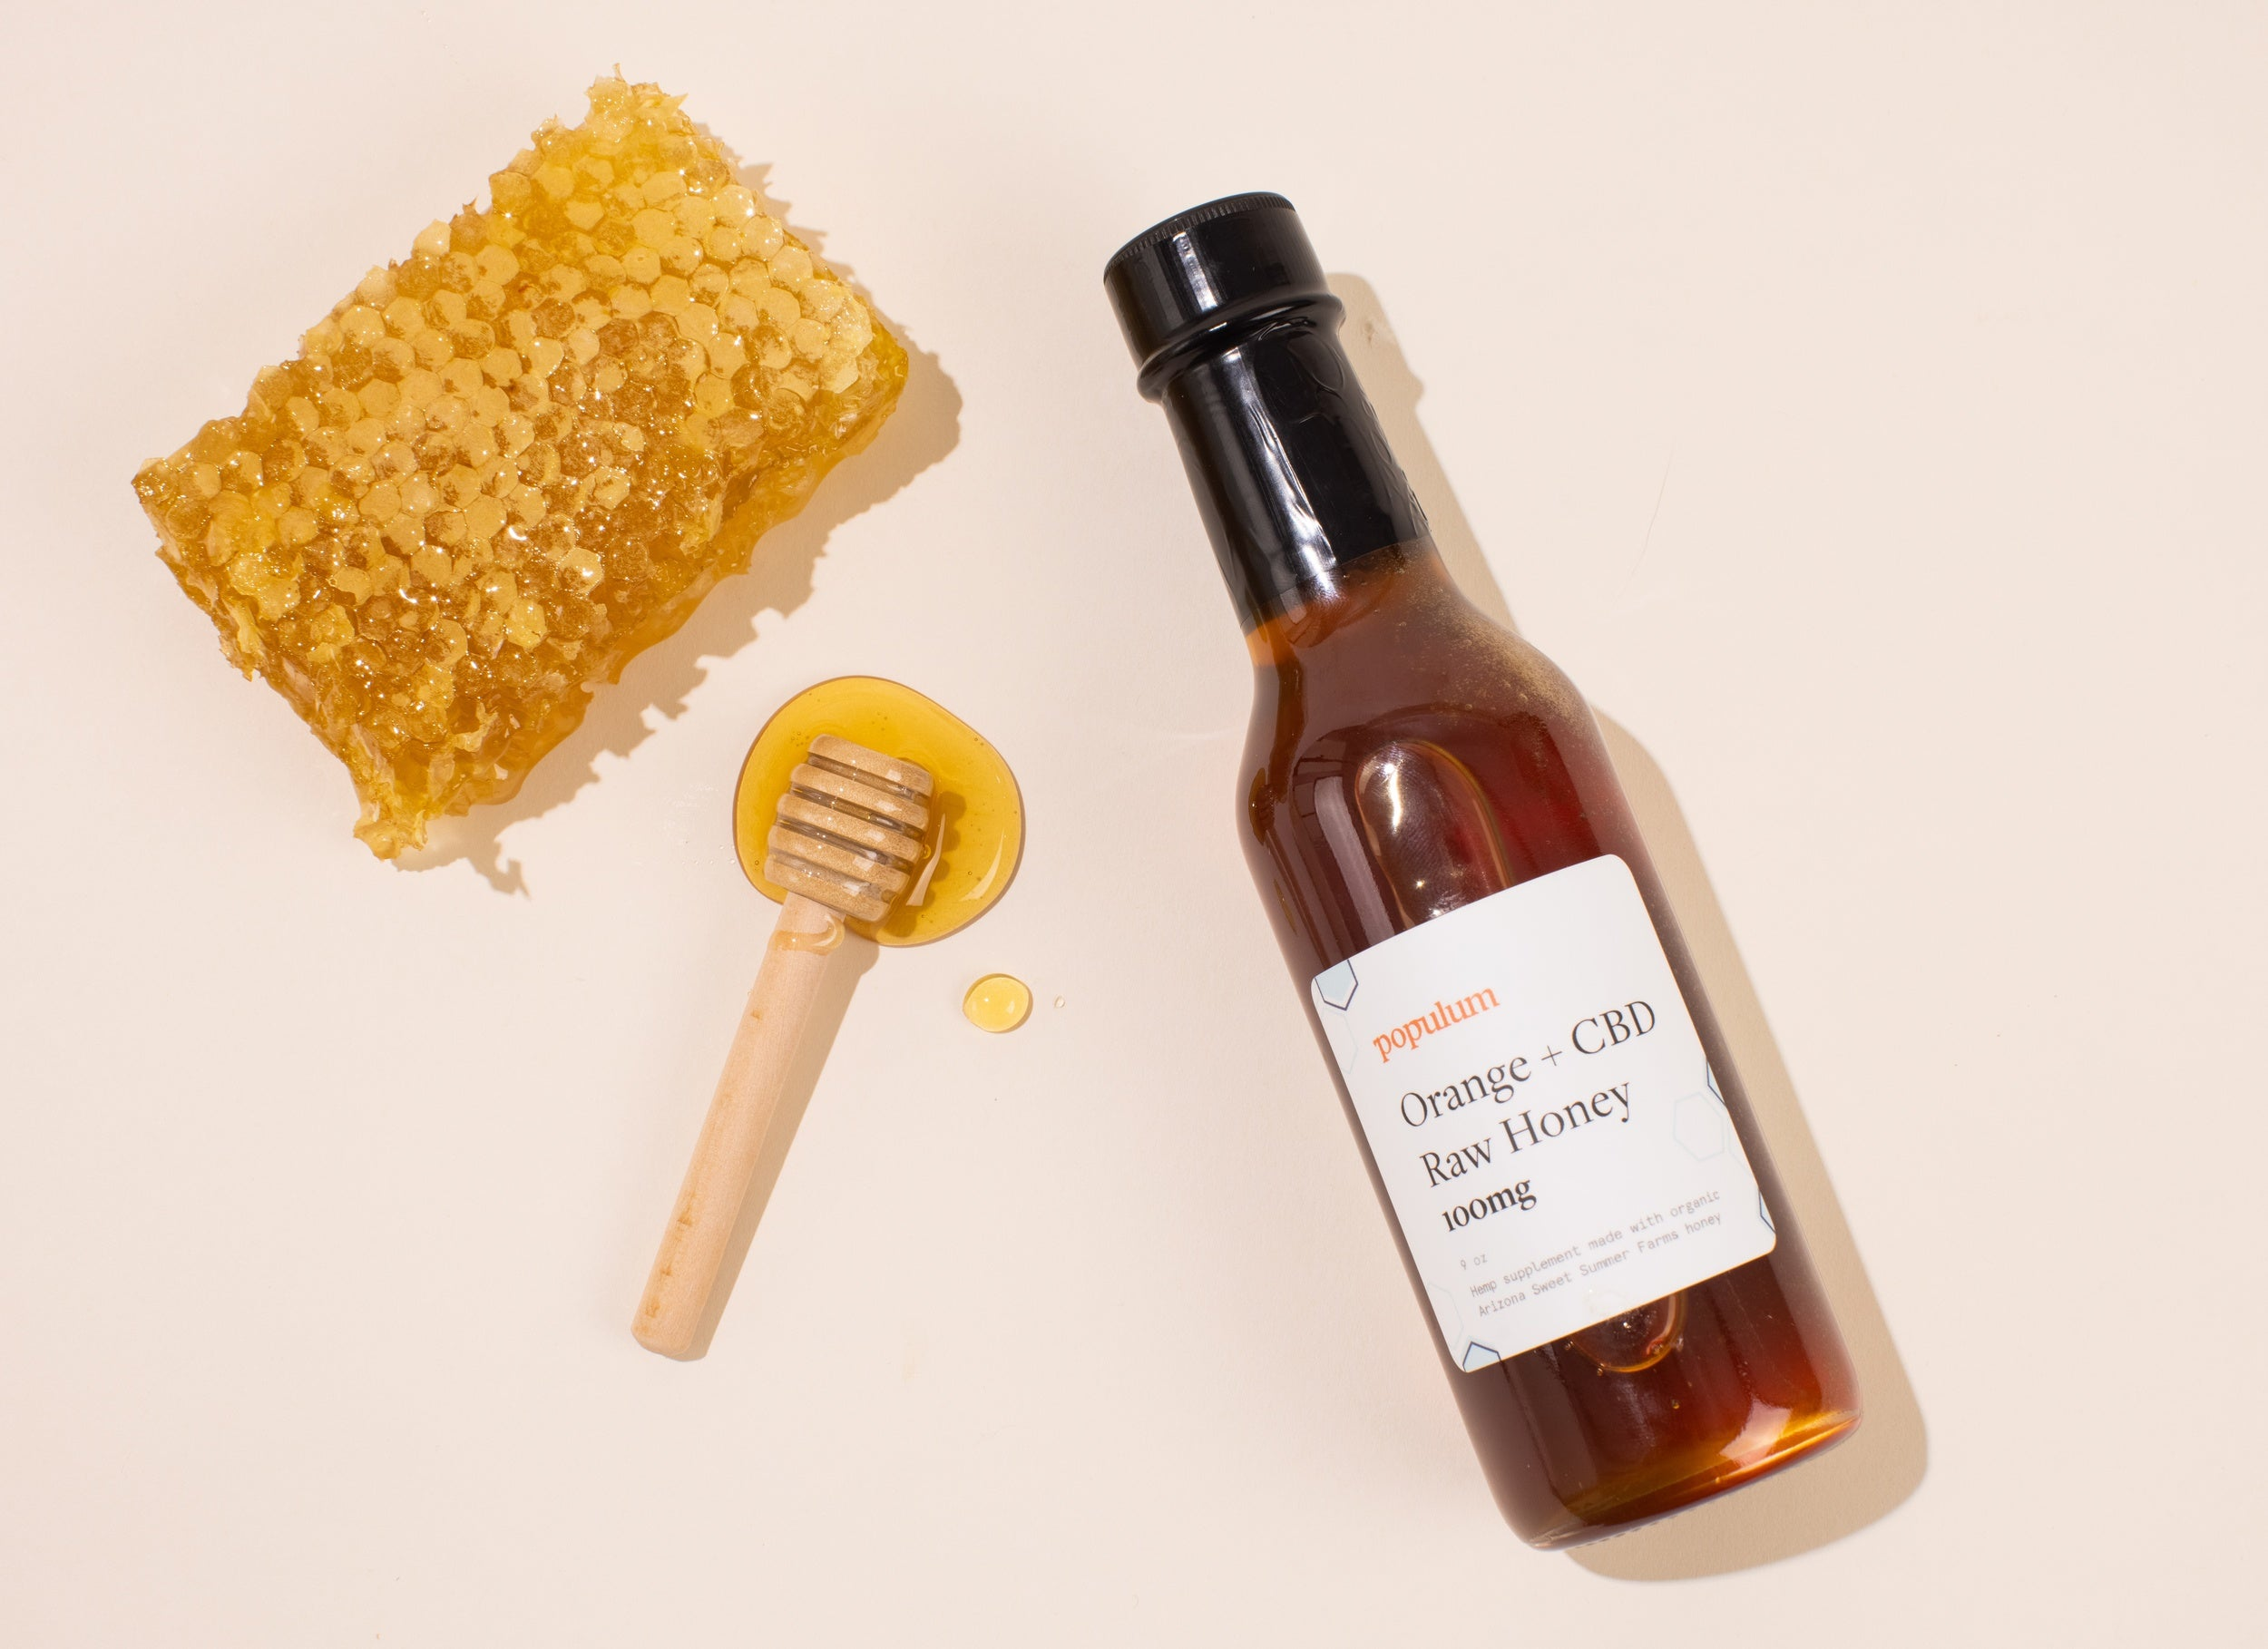 Orange + CBD Raw Honey